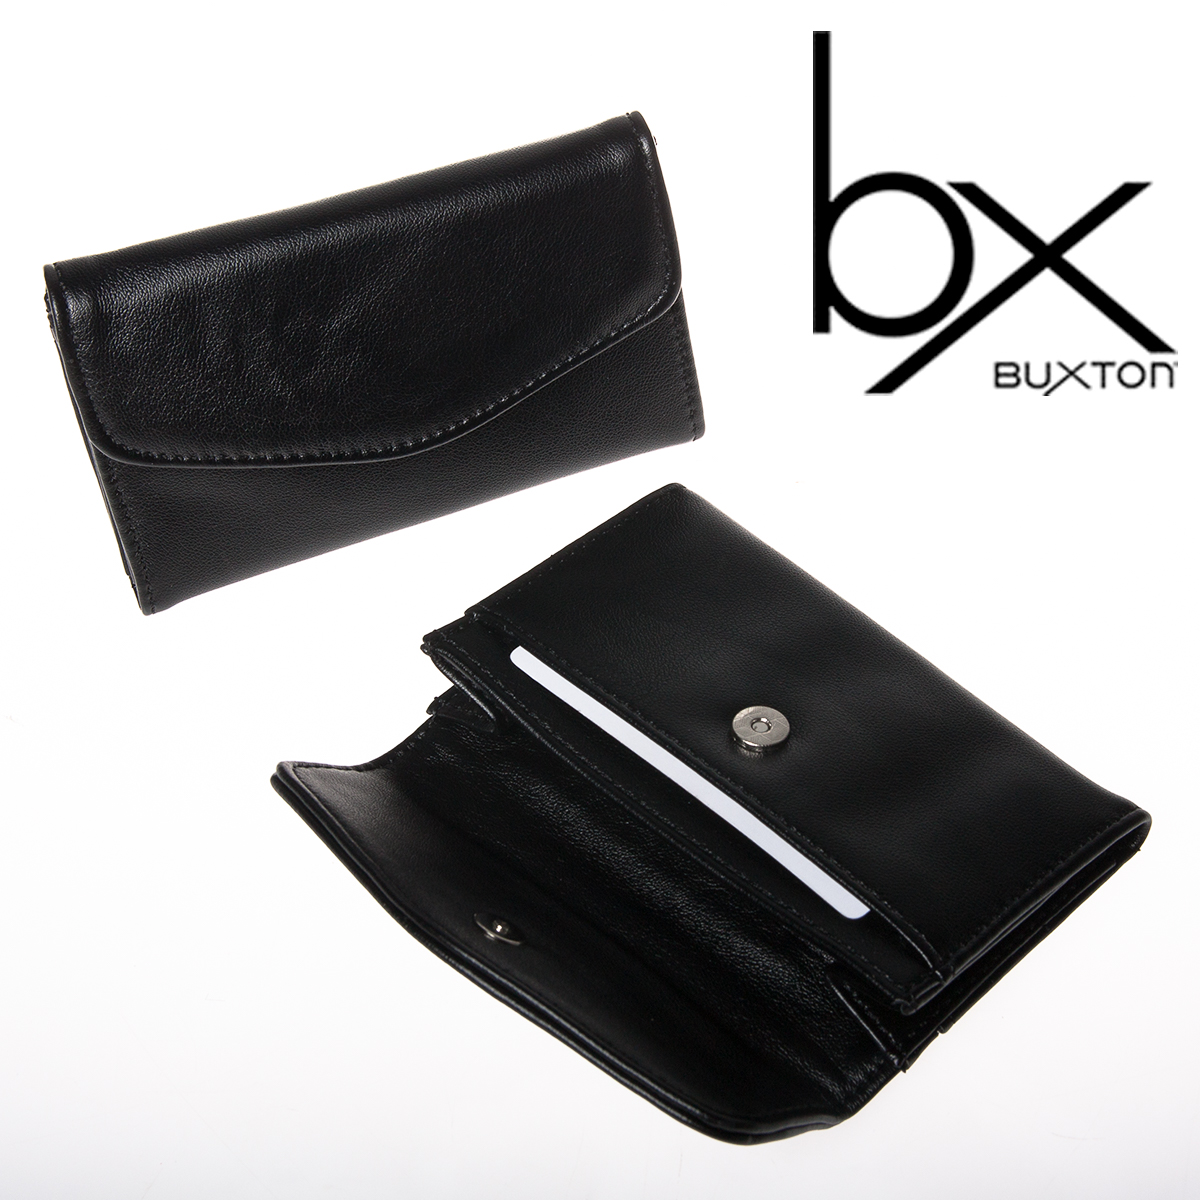 2 Buxton Black Faux Leather Snap Business Card Case Holder